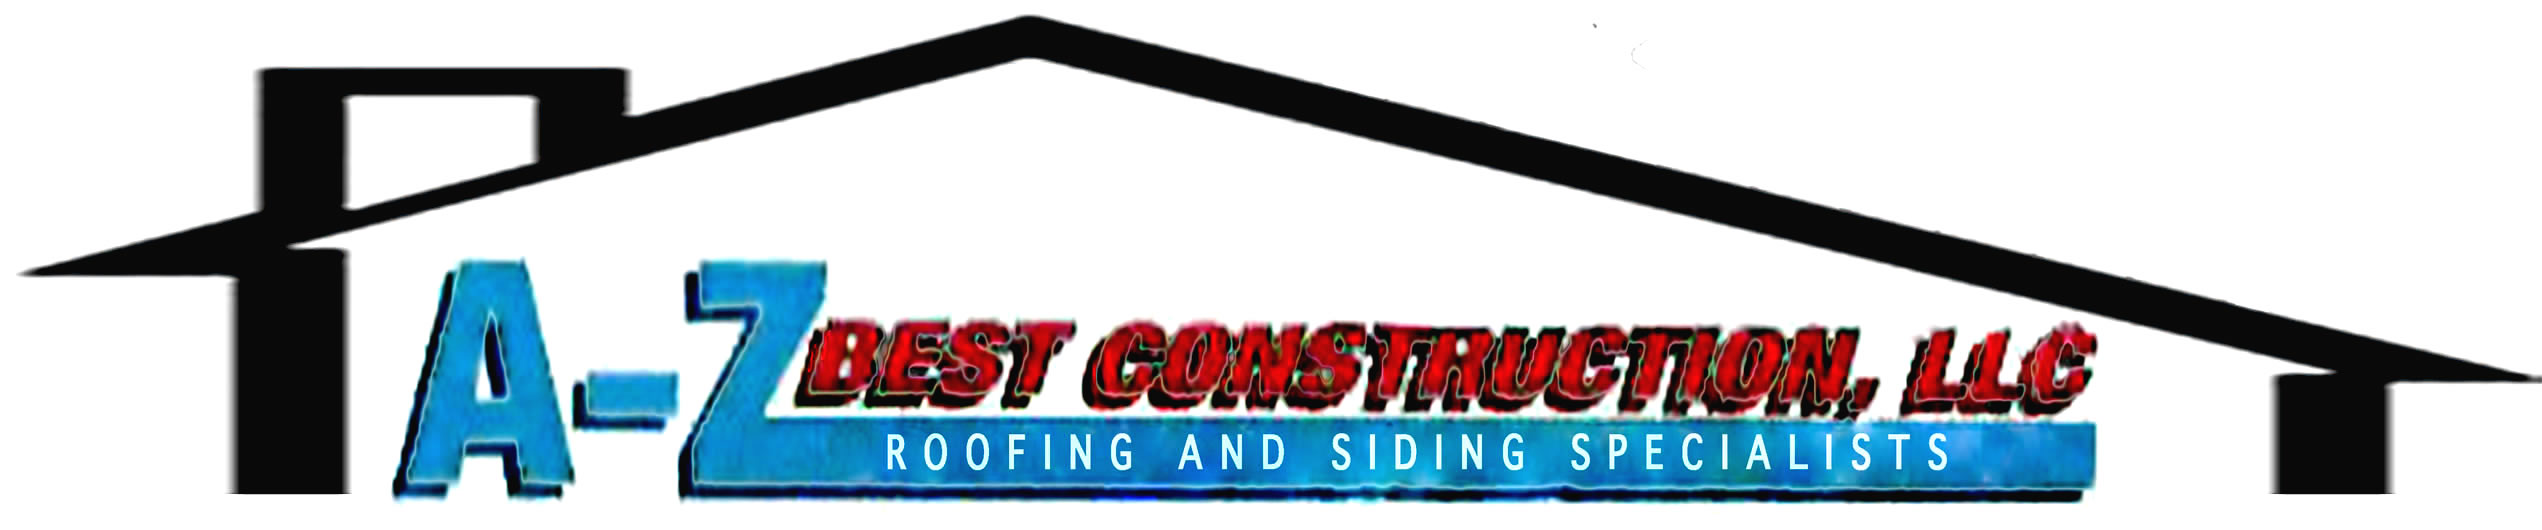 logo of az best roofing